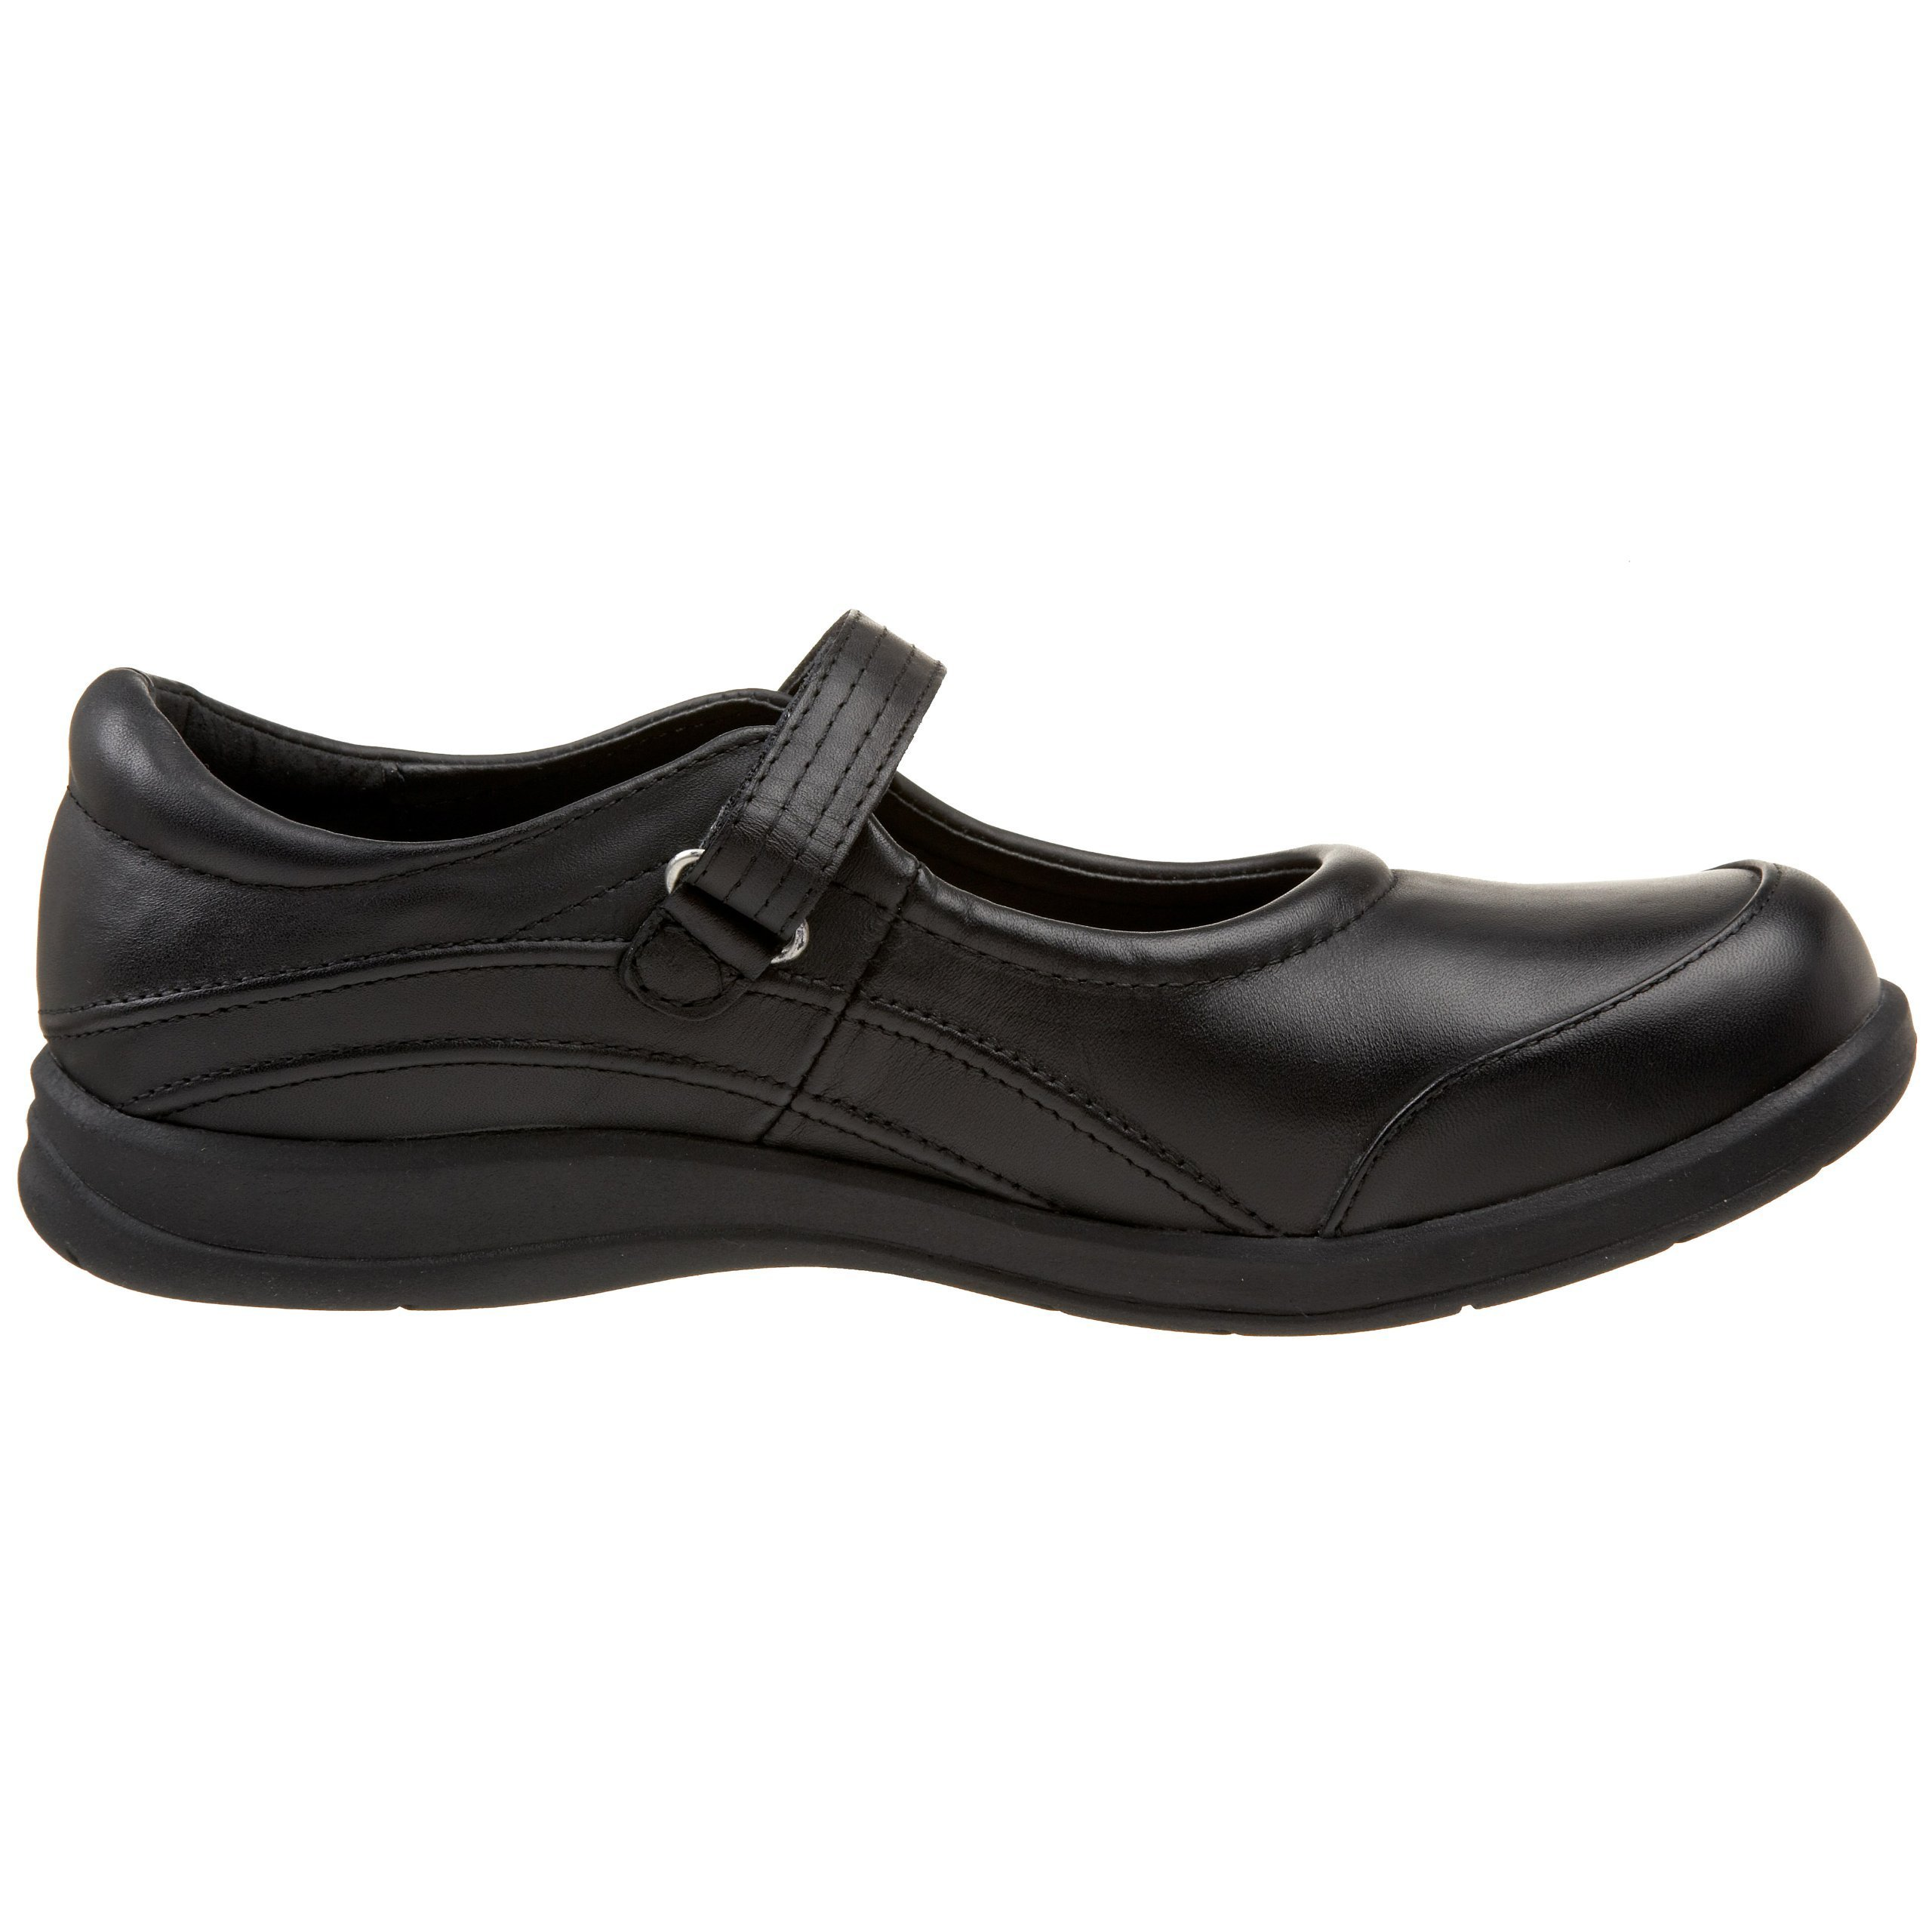 Stride Rite Little Kid/Big Kid Molly Mary Jane,Black Leather,10 N US Toddler by Stride Rite (Image #5)